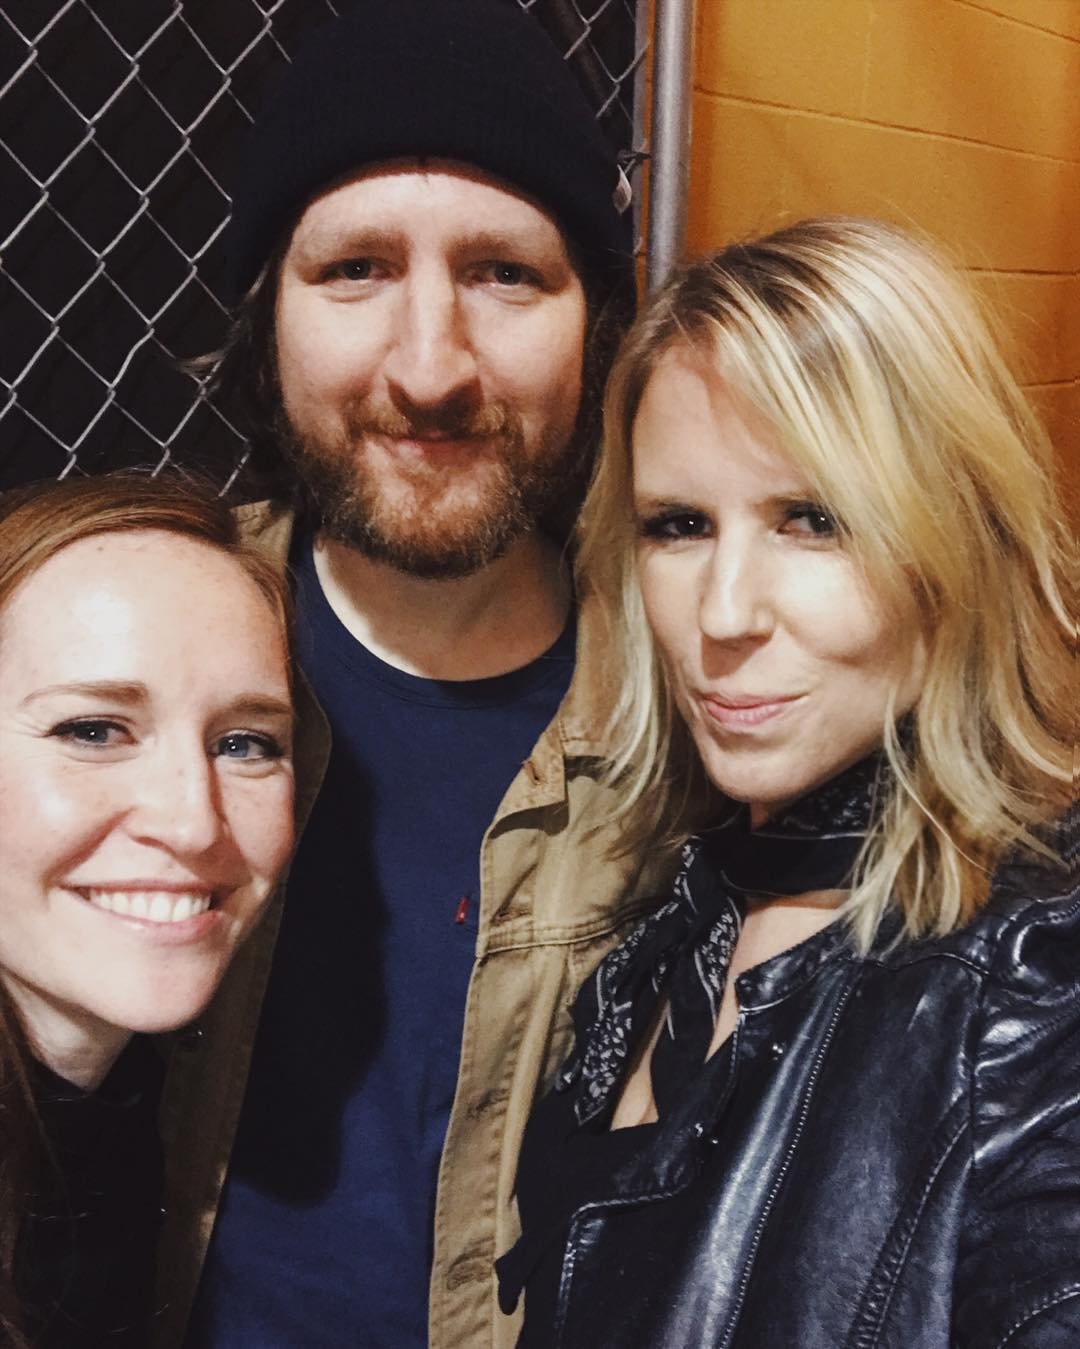 Backstage with Alex and Amy after the Farewell Tour show in LA, 2018